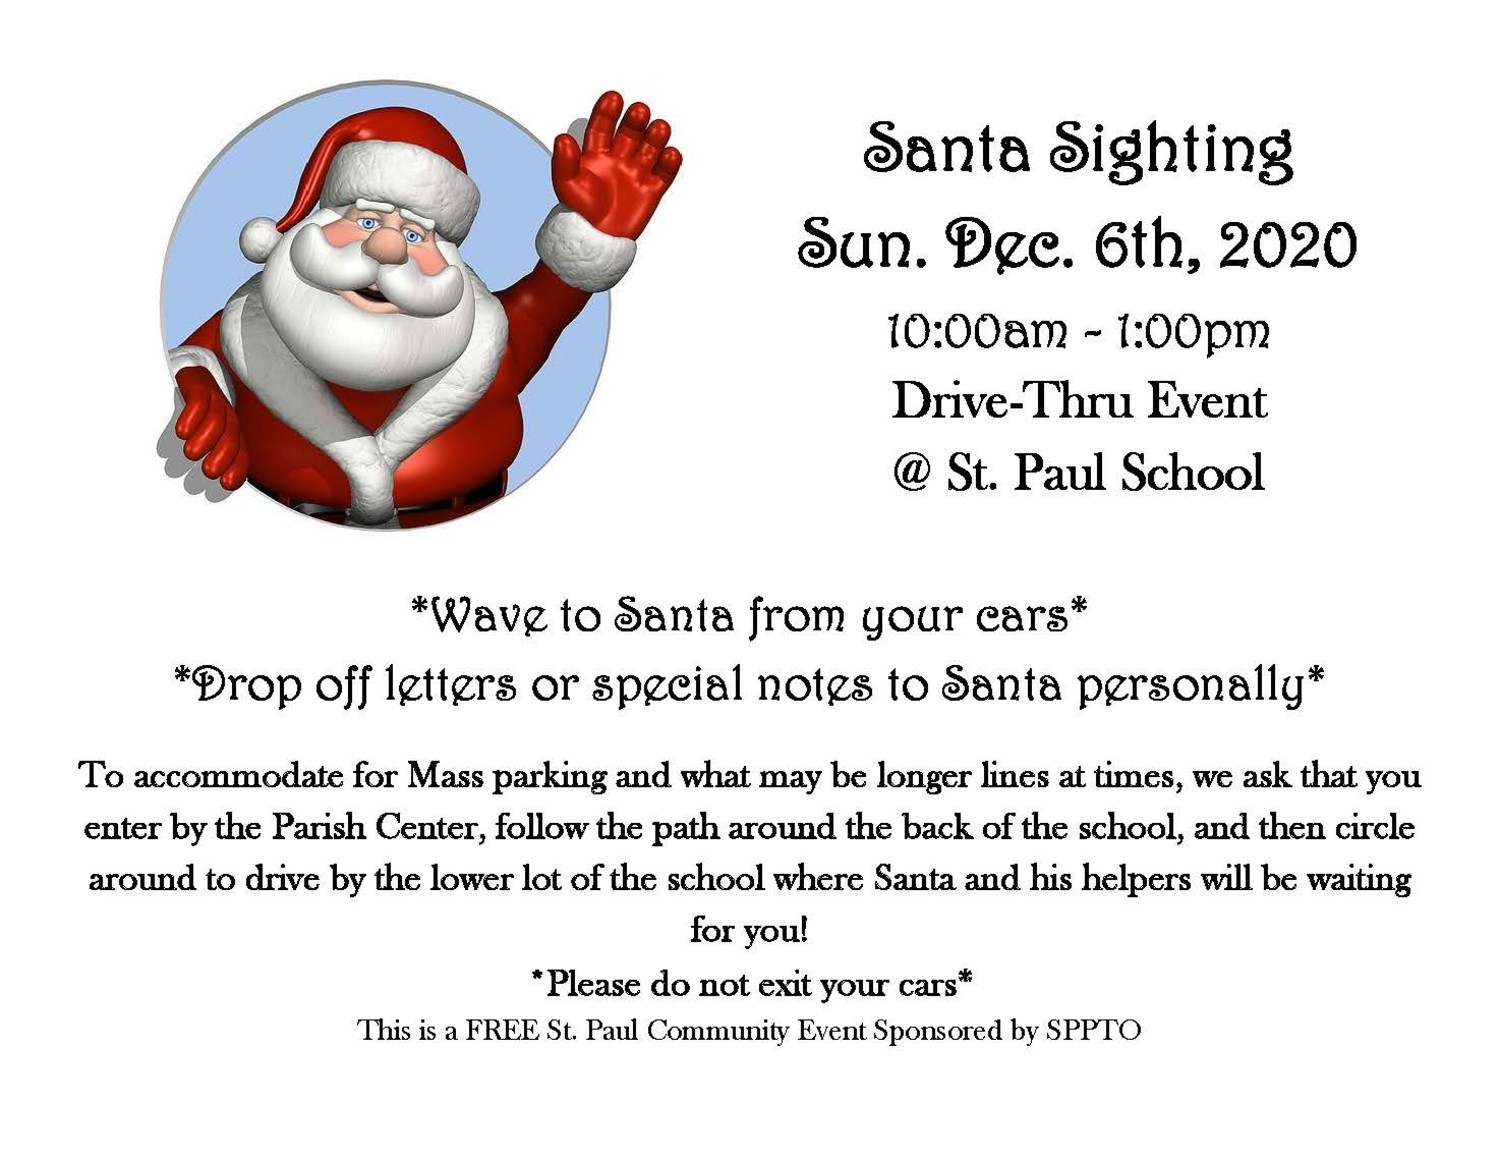 Santasightingflyer Final